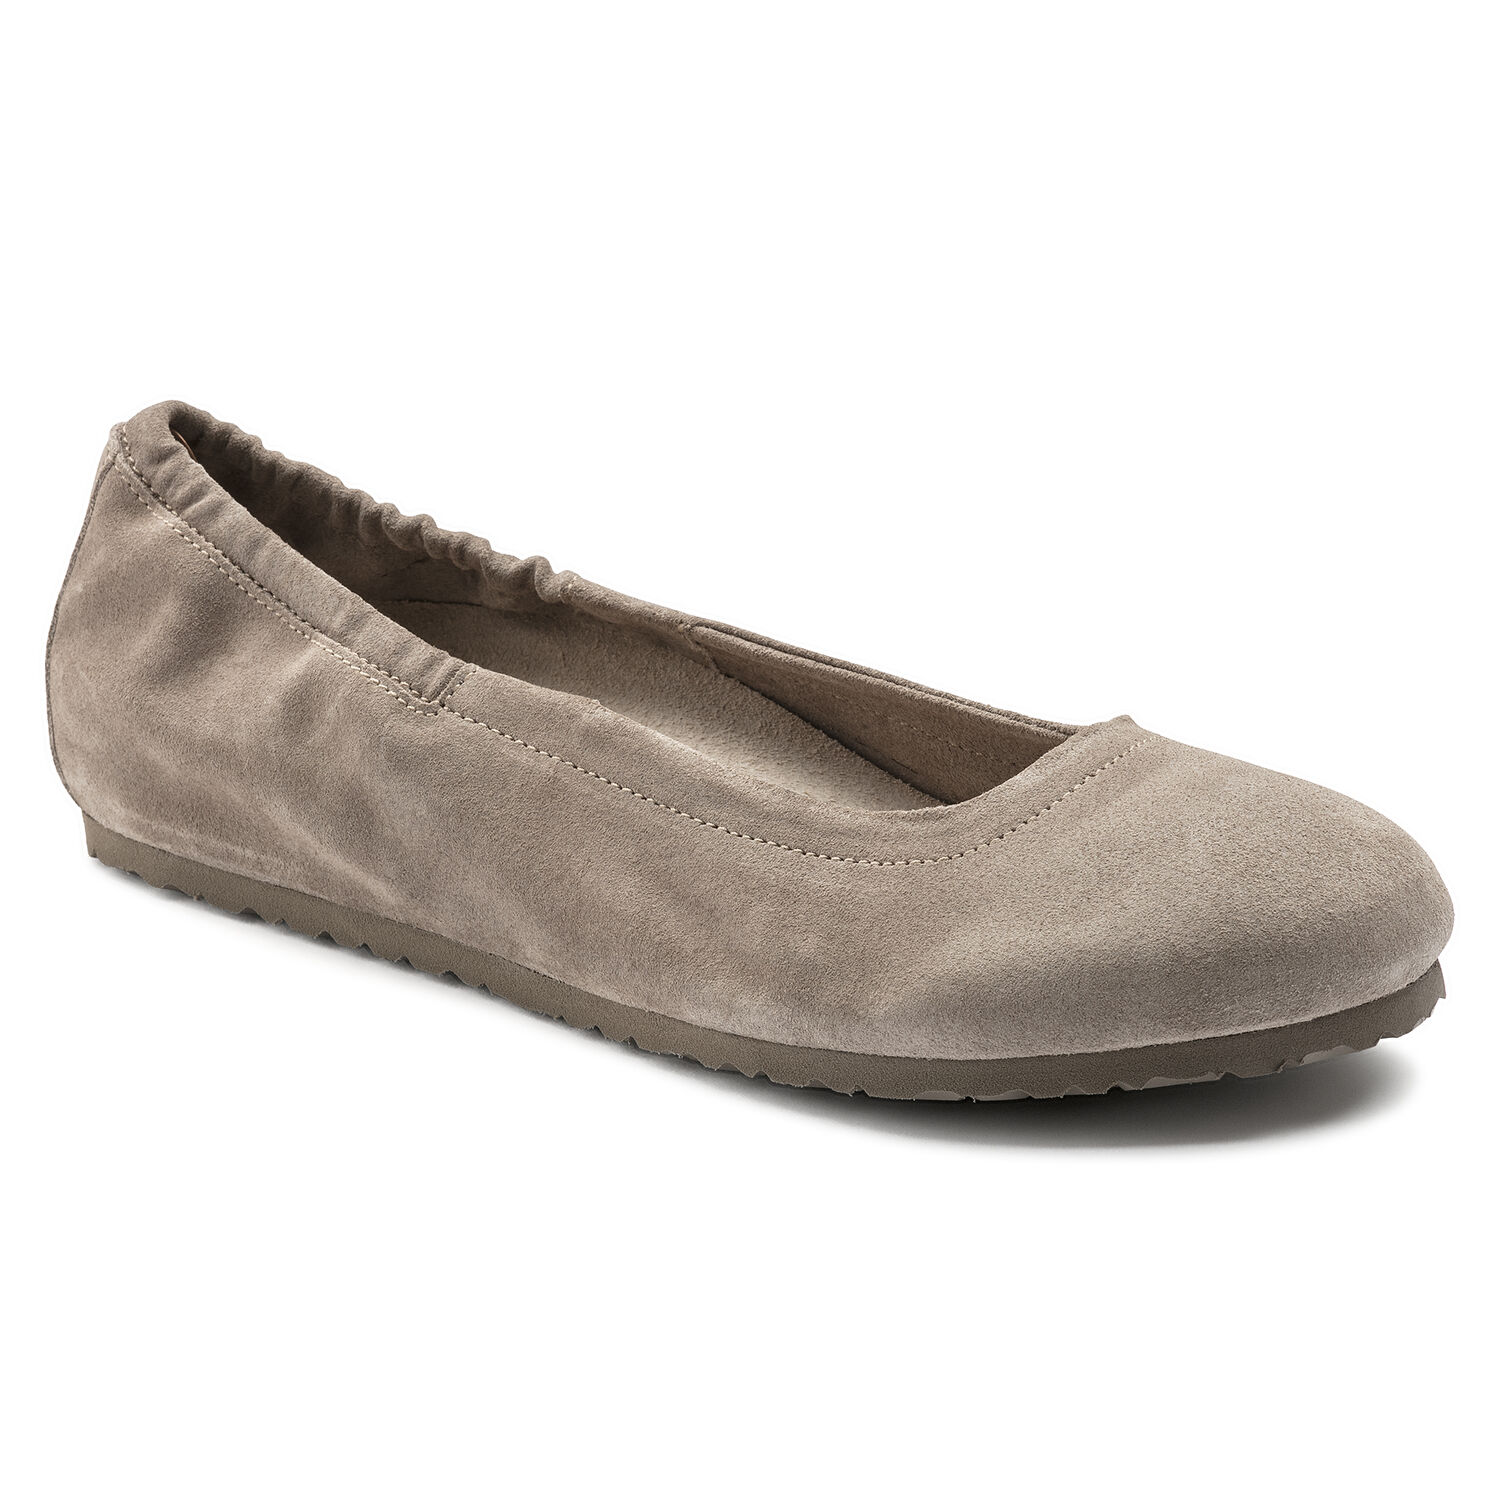 1873f34afb9 Celina Suede Leather Taupe